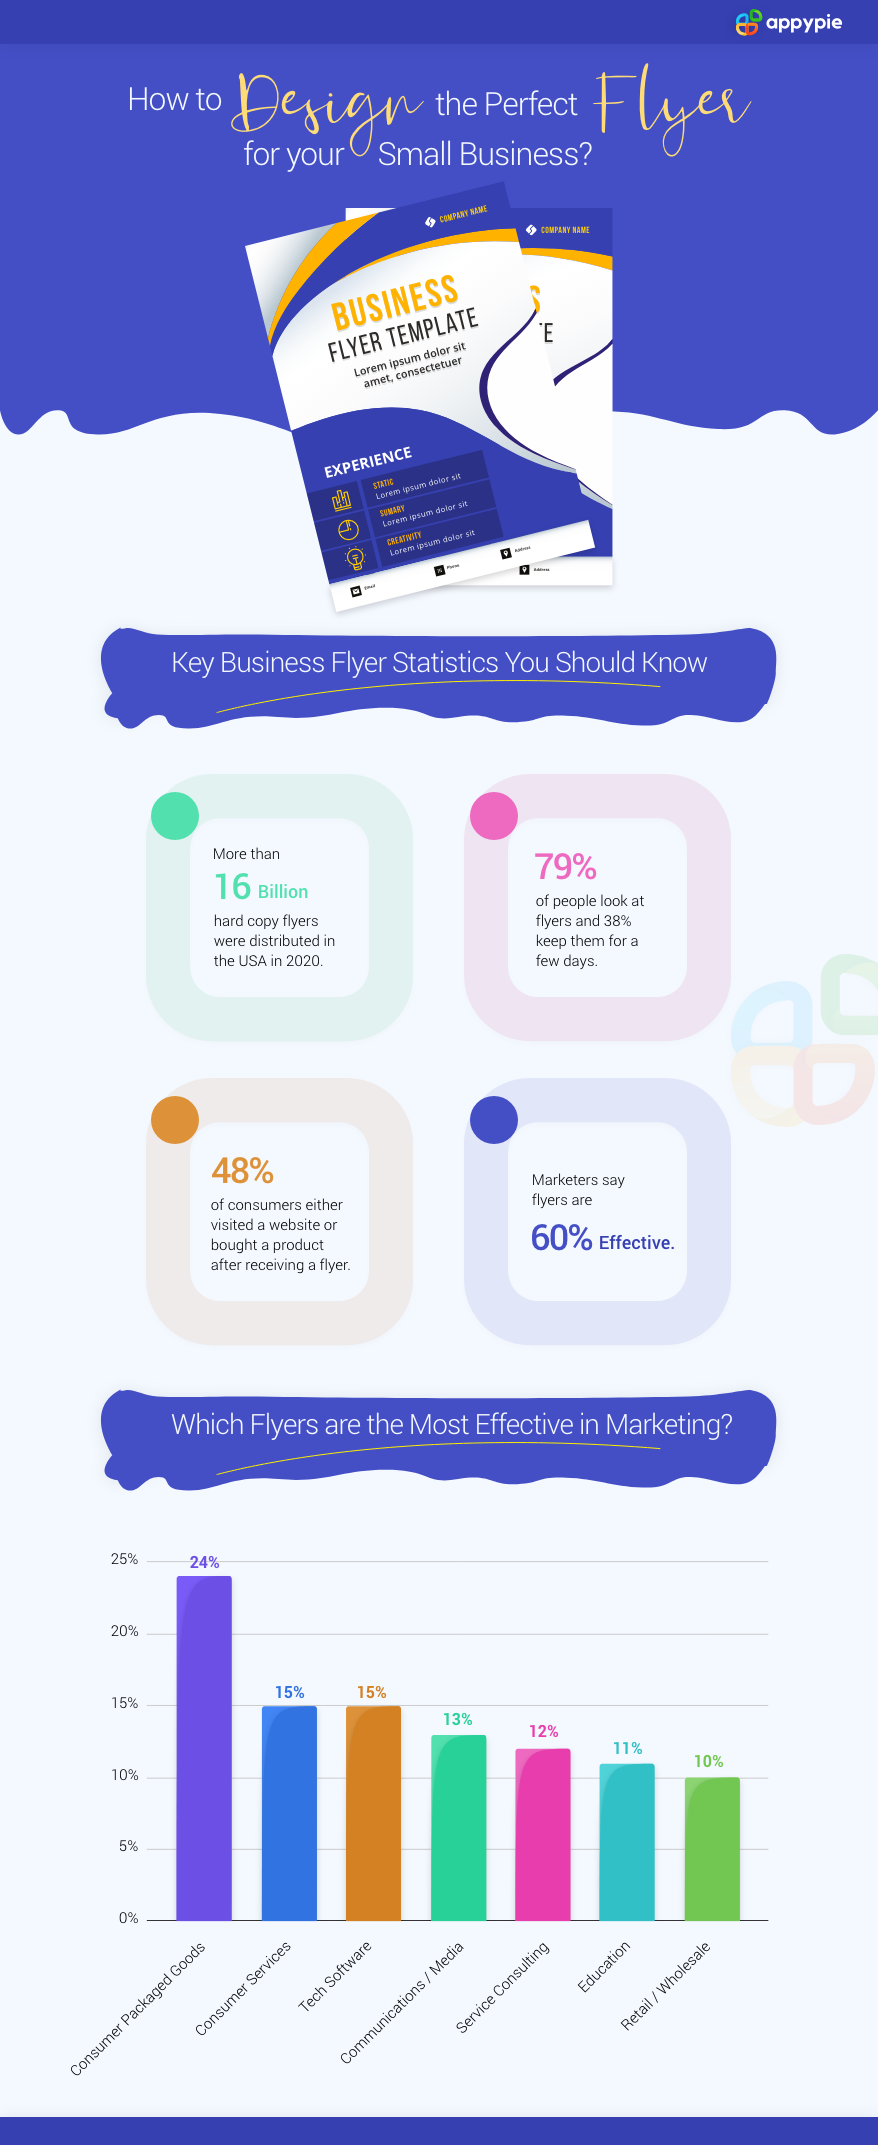 How to Design the Perfect Flyer for your Small Business - Appy Pie